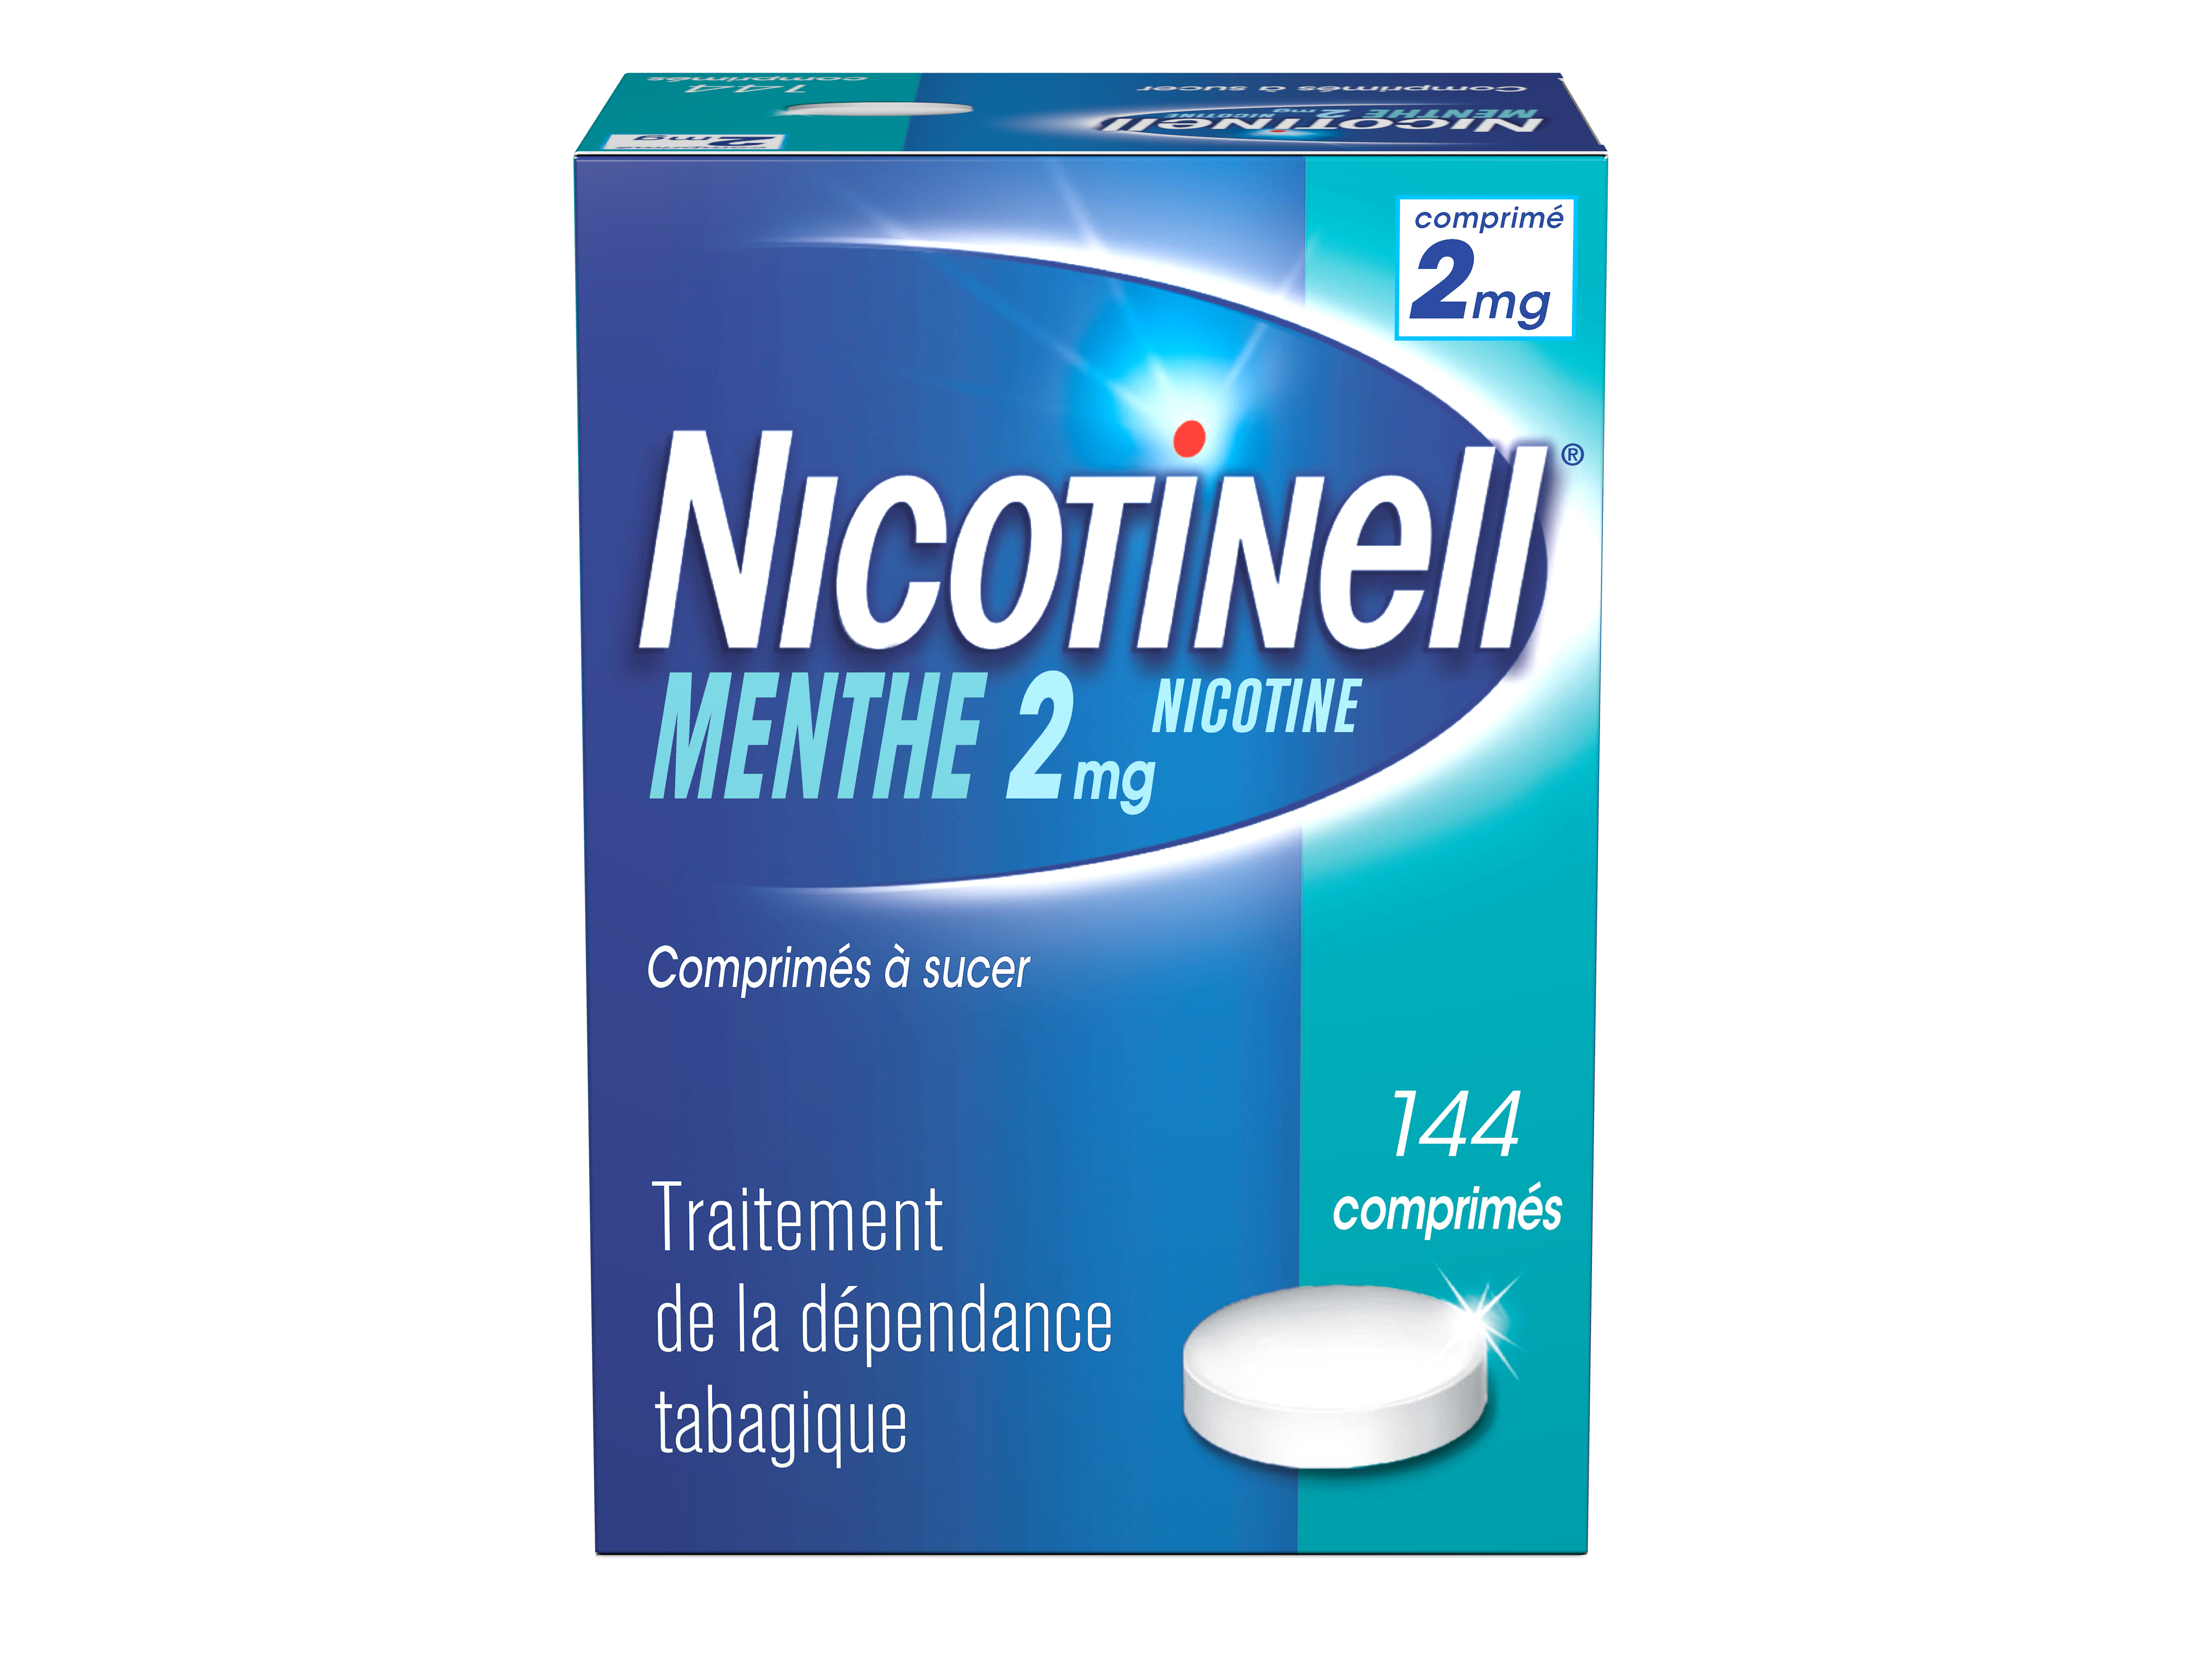 Image NICOTINELL 2 mg Cpr à sucer menthe Plaq/144